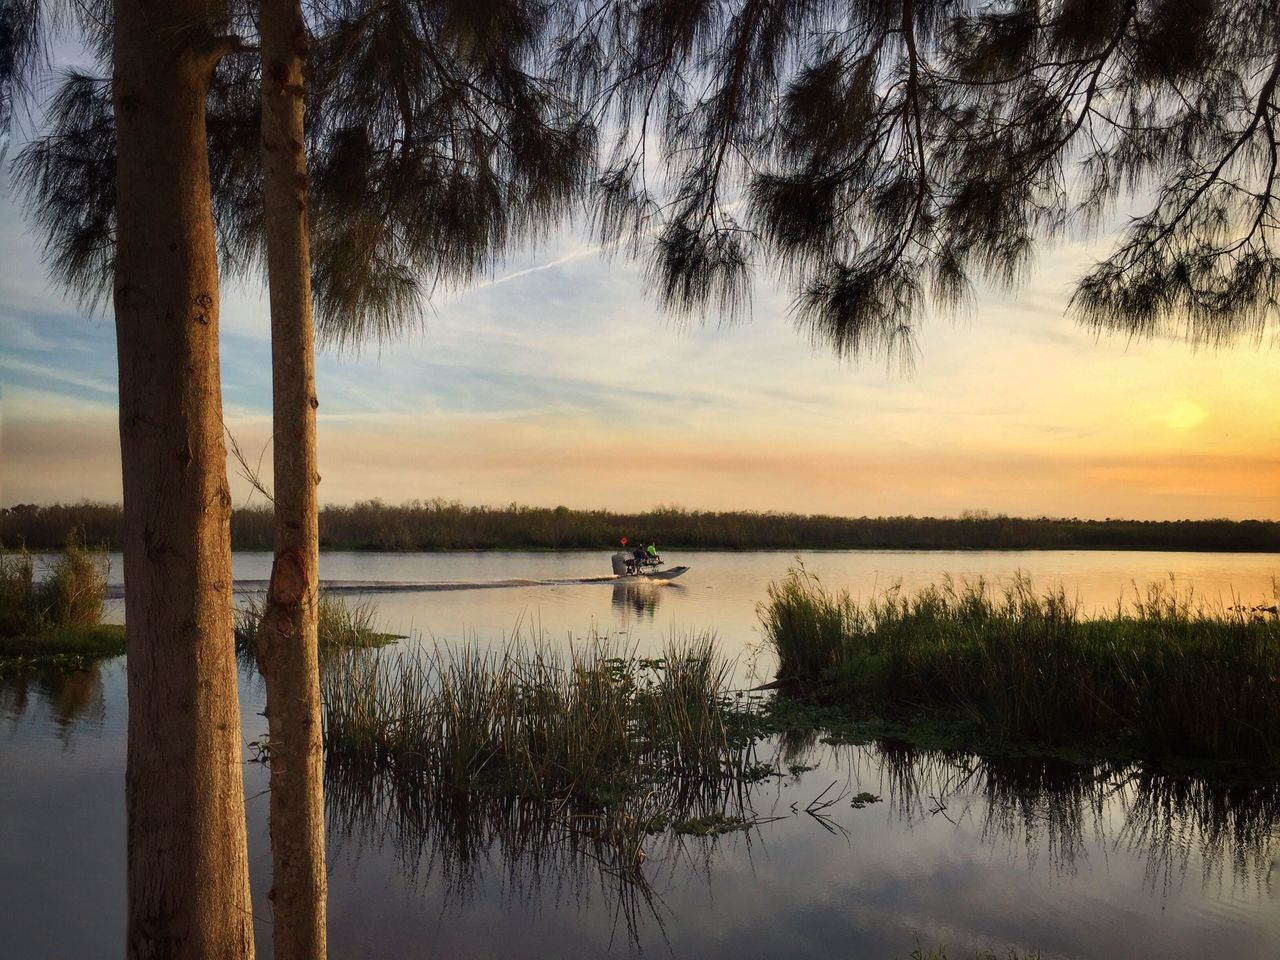 Airboat into the sunset St Johns River Melbourne Florida Airboat Airboat Ride Reflection Tranquil Scene Tranquility Idyllic Florida Nature Florida Landscape Sunset Boat Ride